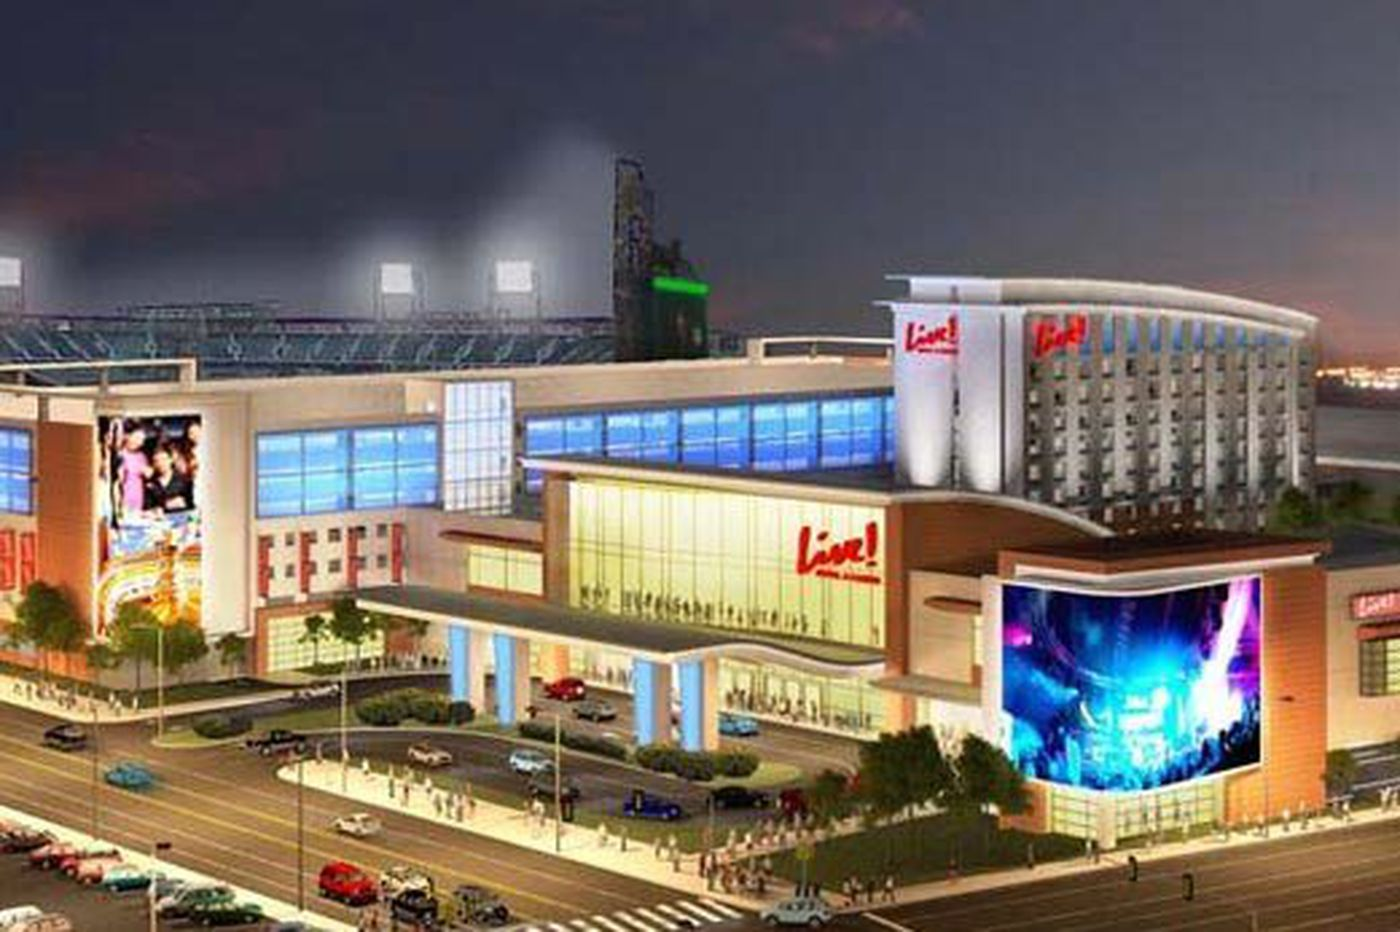 Bucks lawmaker introduces bill to ease way for S. Philly casino